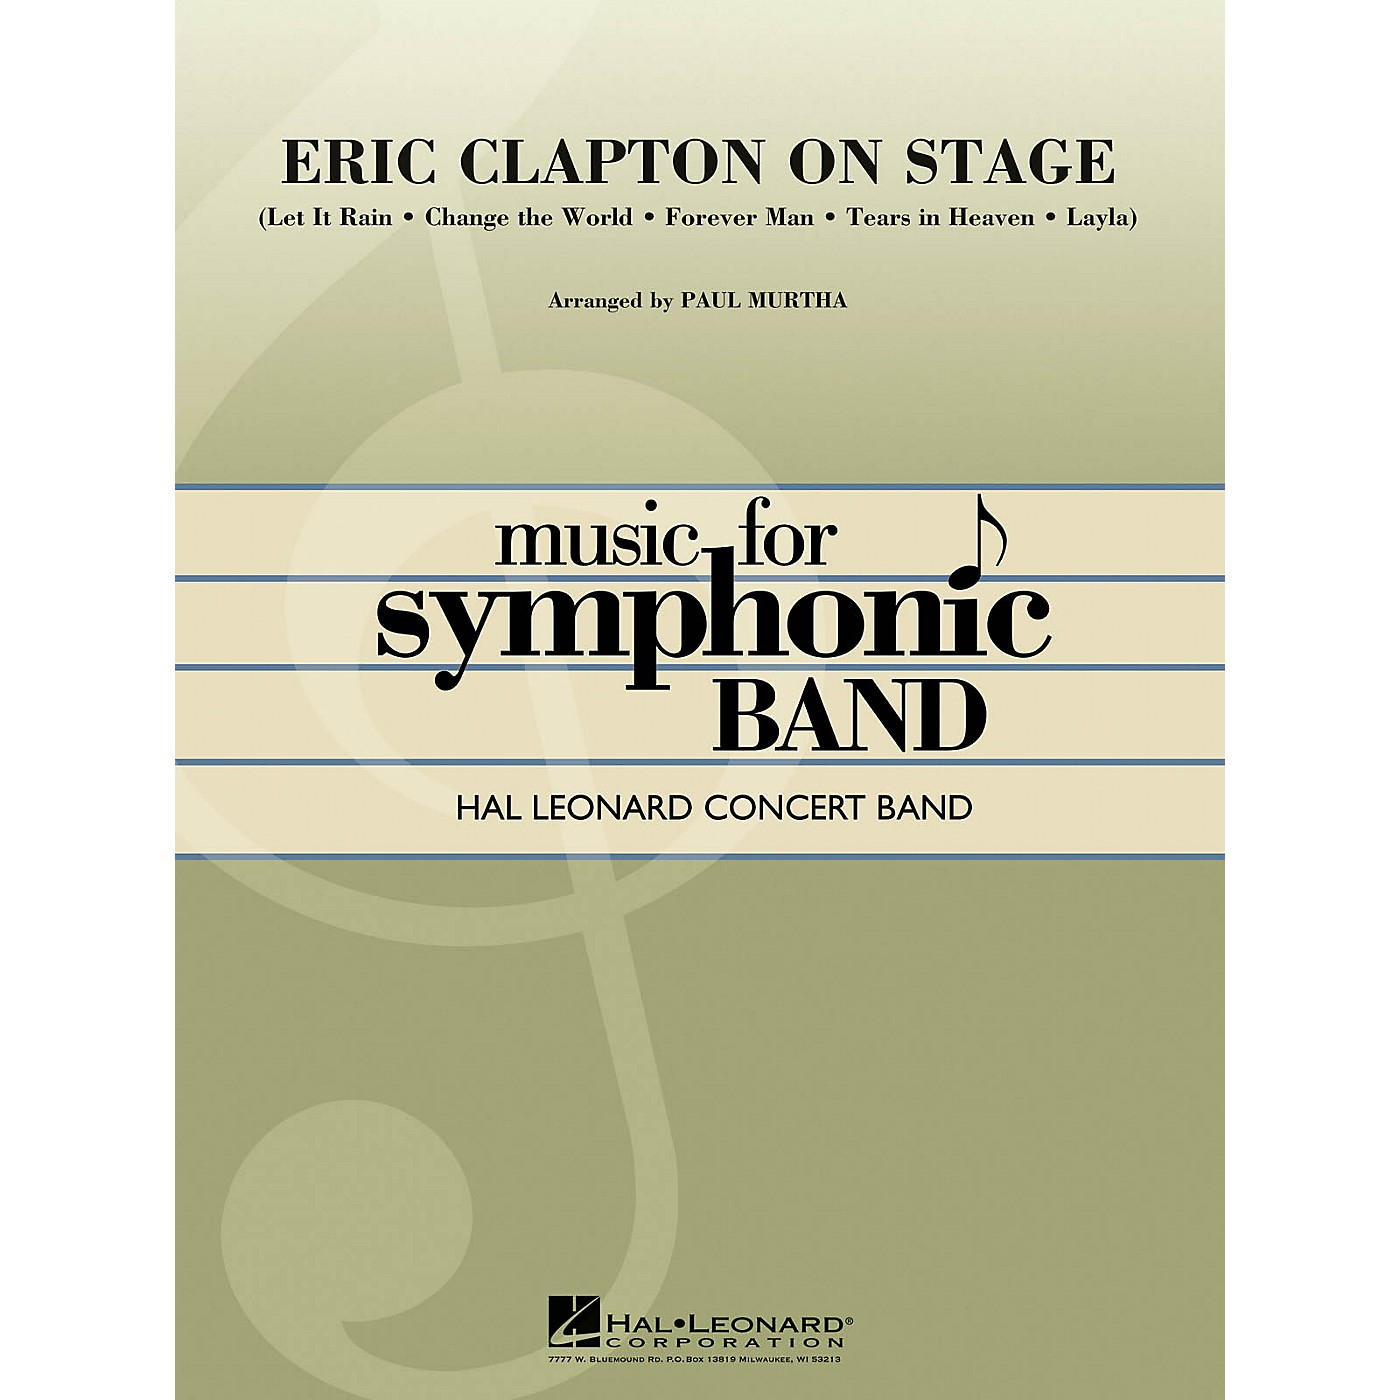 Hal Leonard Eric Clapton on Stage Concert Band Level 4 by Eric Clapton Arranged by Paul Murtha thumbnail